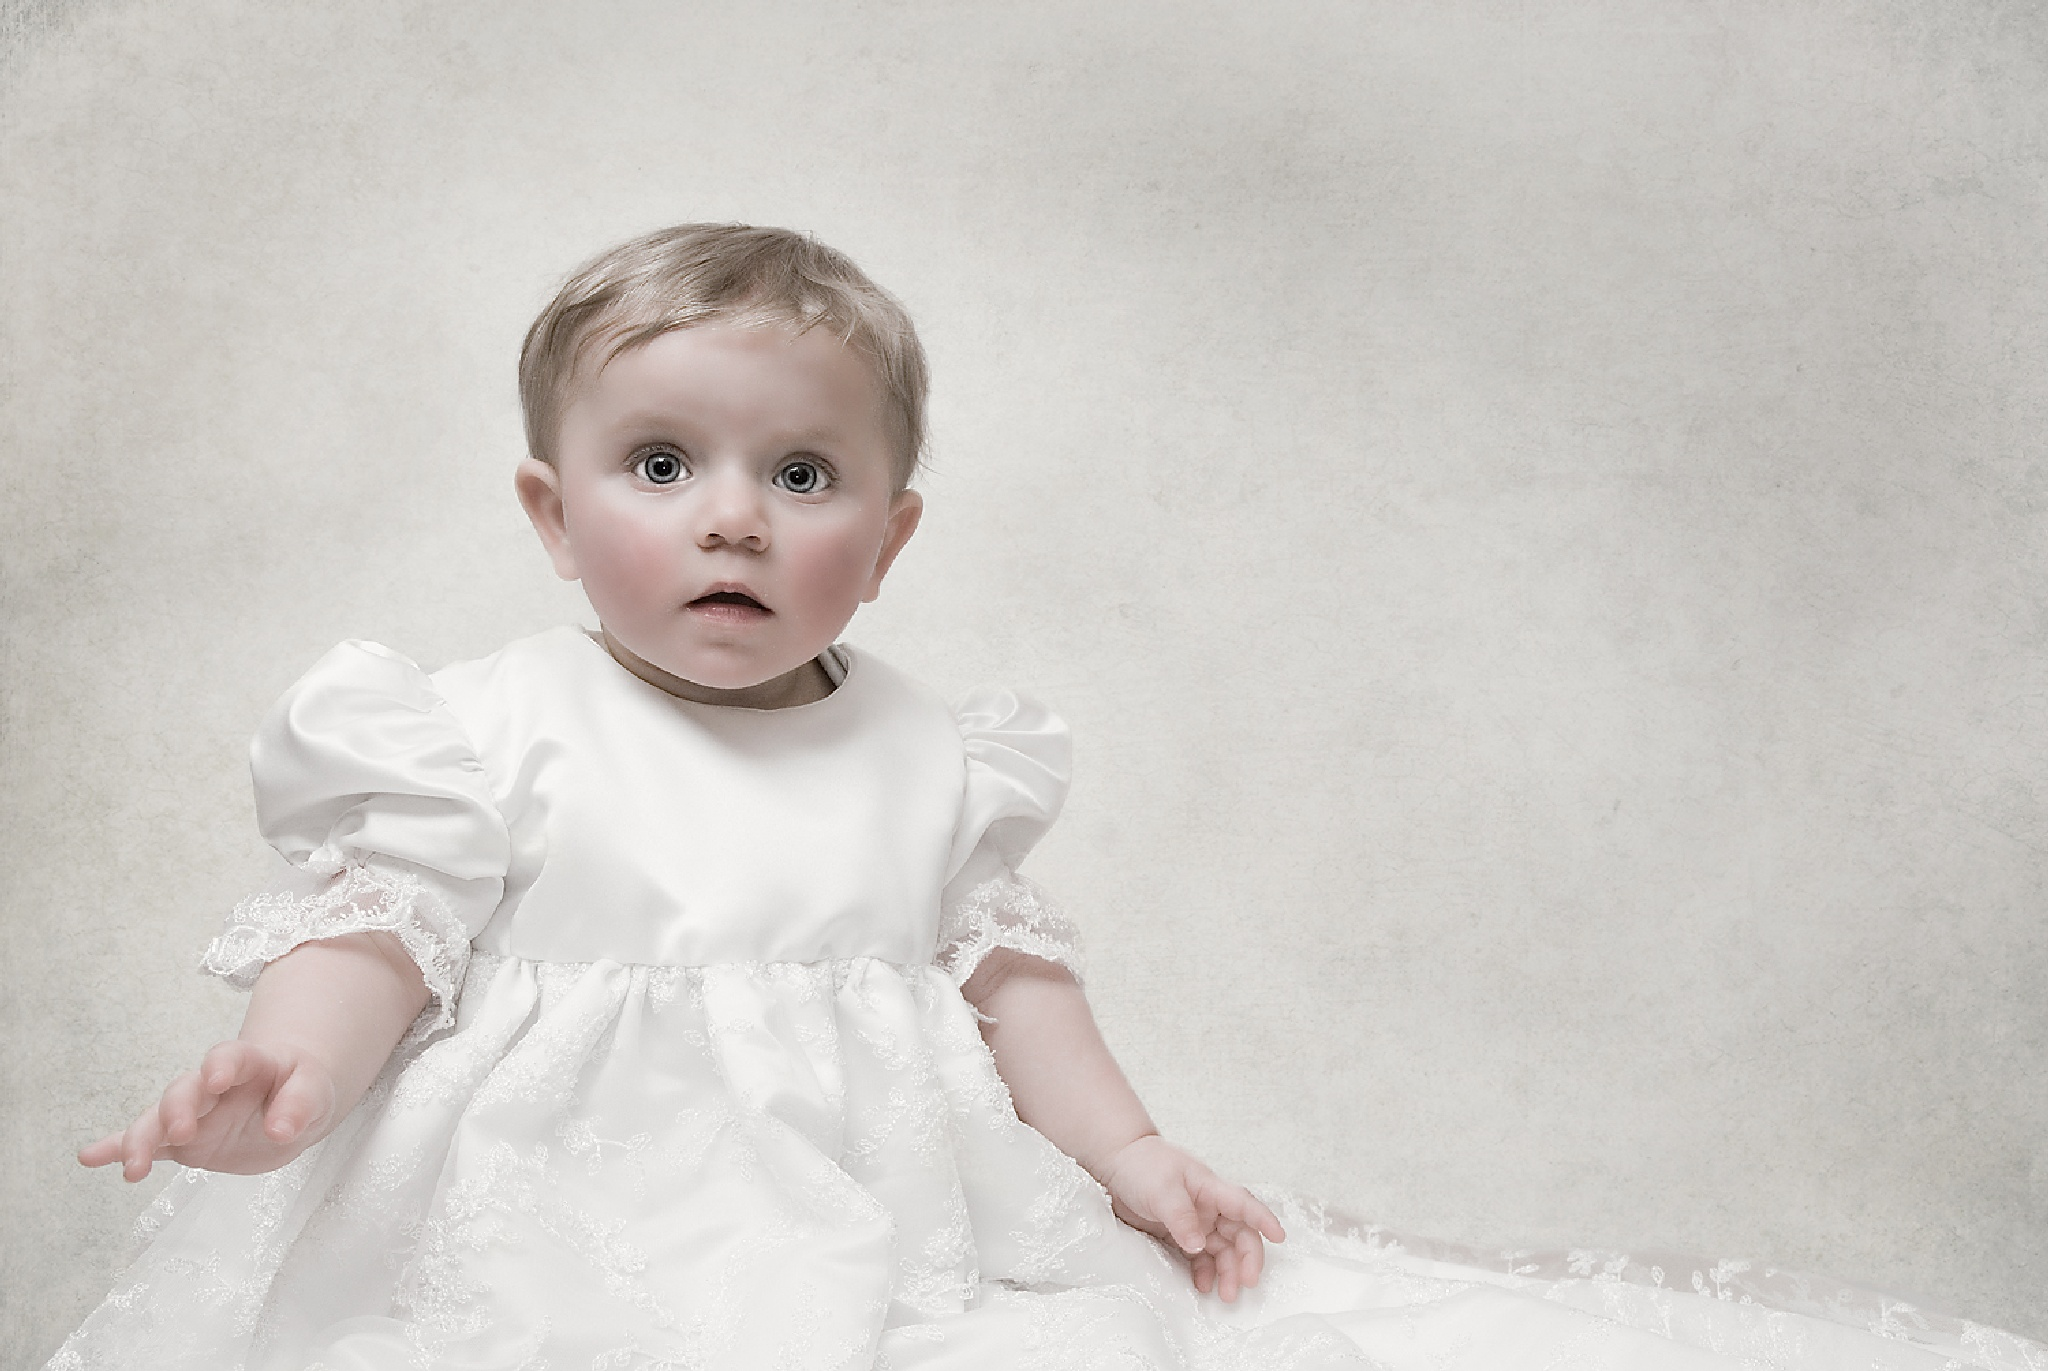 Christening Day  by Ian Scrimgeour